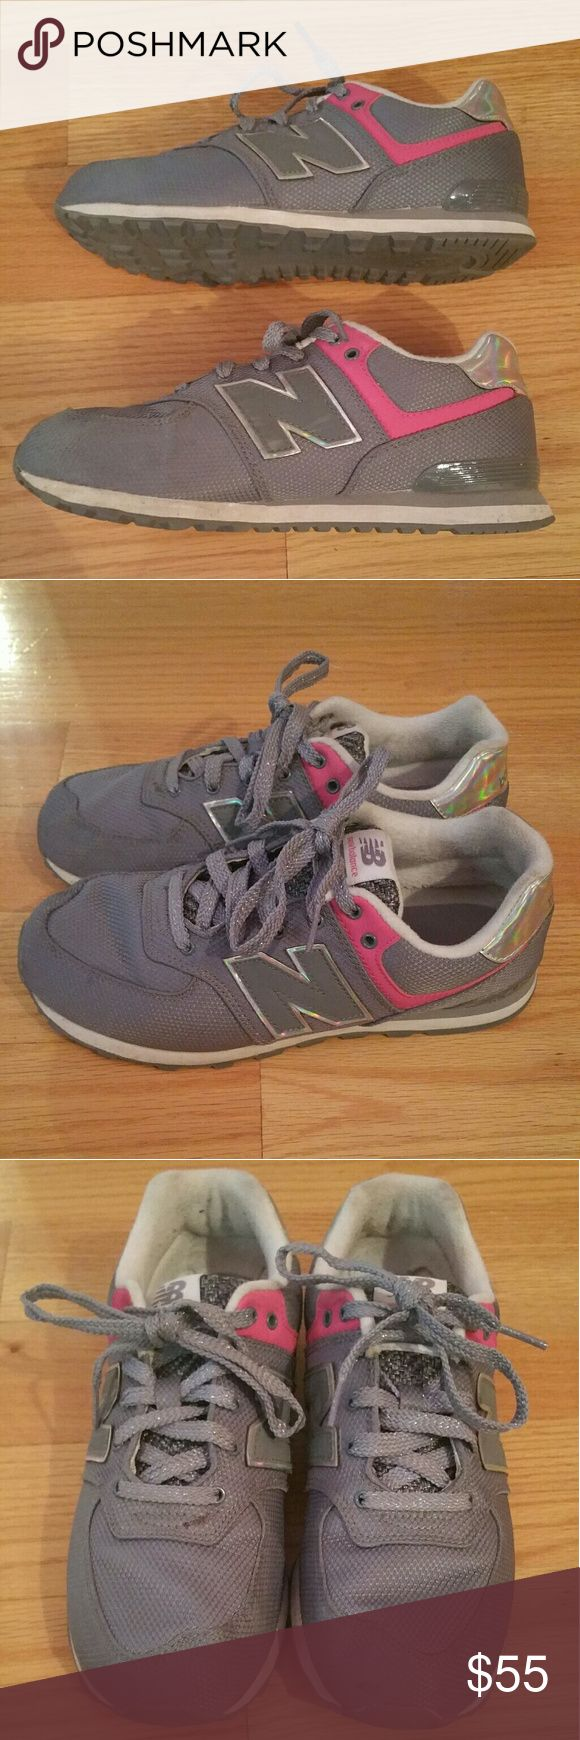 🔥FINAL PRICE🔥Kids New Balance Sneakers Grey and Pink  New Balance Sneakers Kids size 4 Worn a few times In Good Condition New Balance Shoes Sneakers